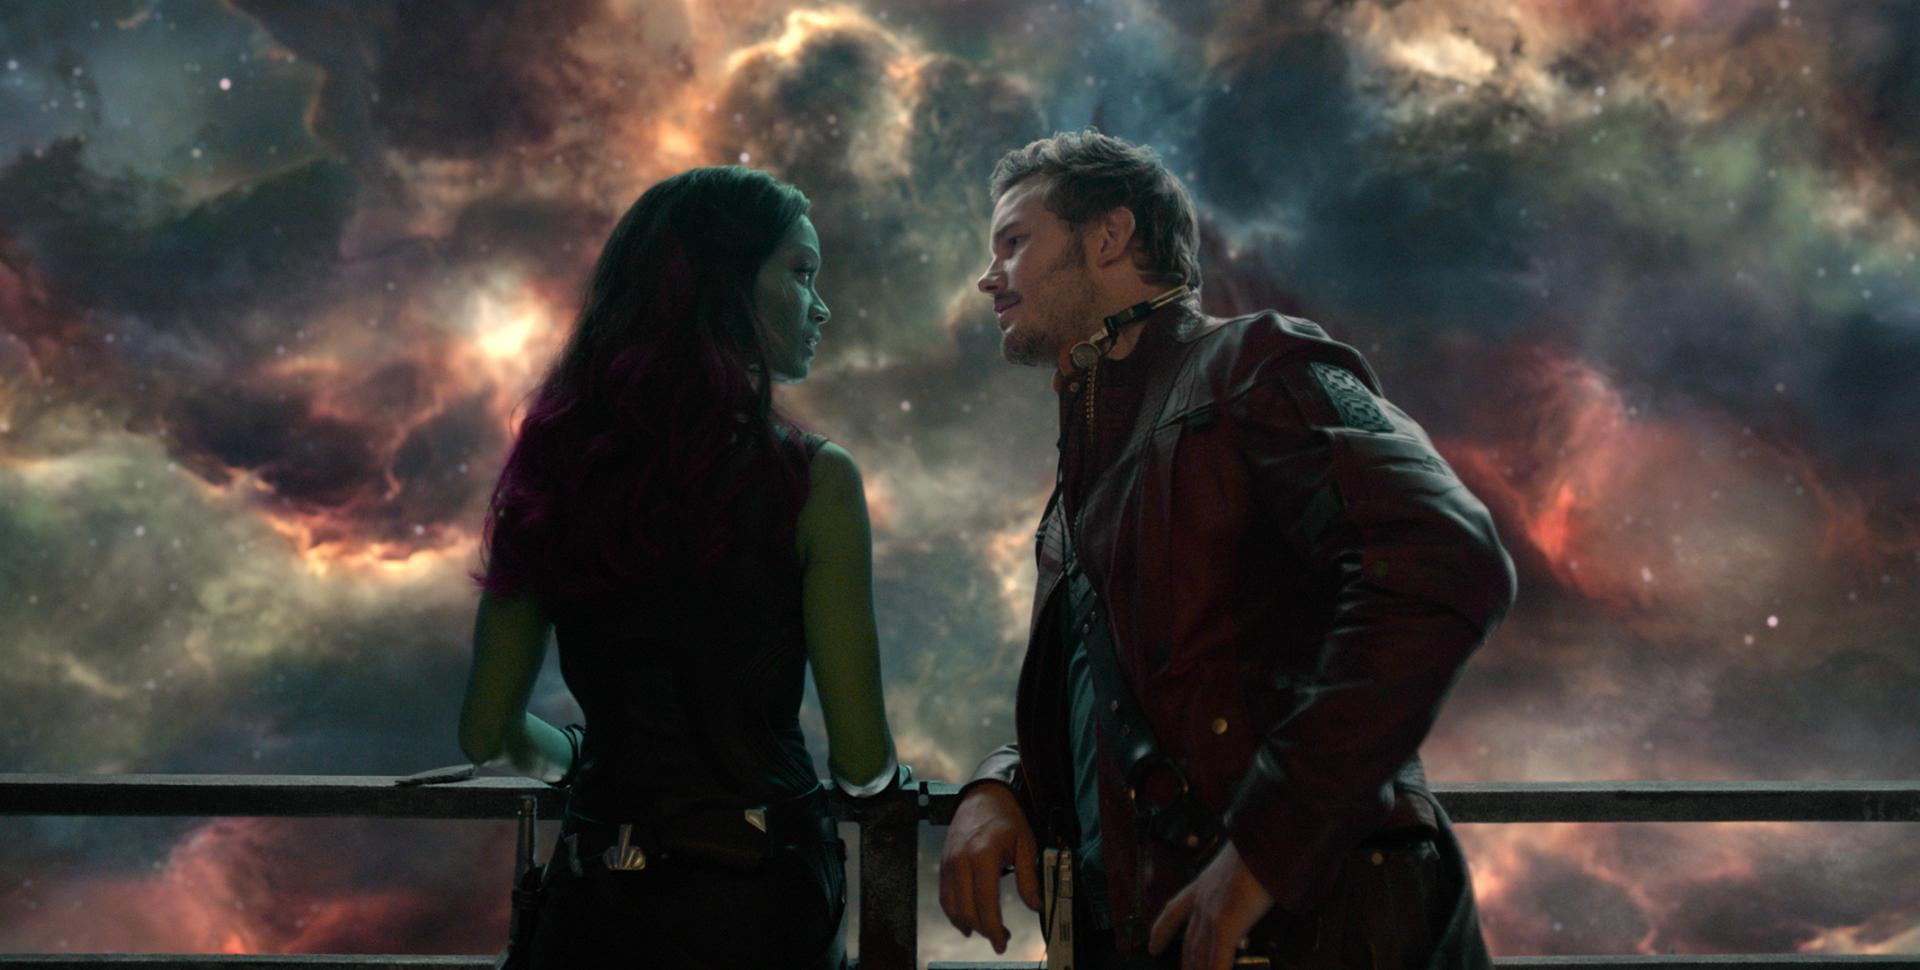 Image gallery for Guardians of the Galaxy - FilmAffinity